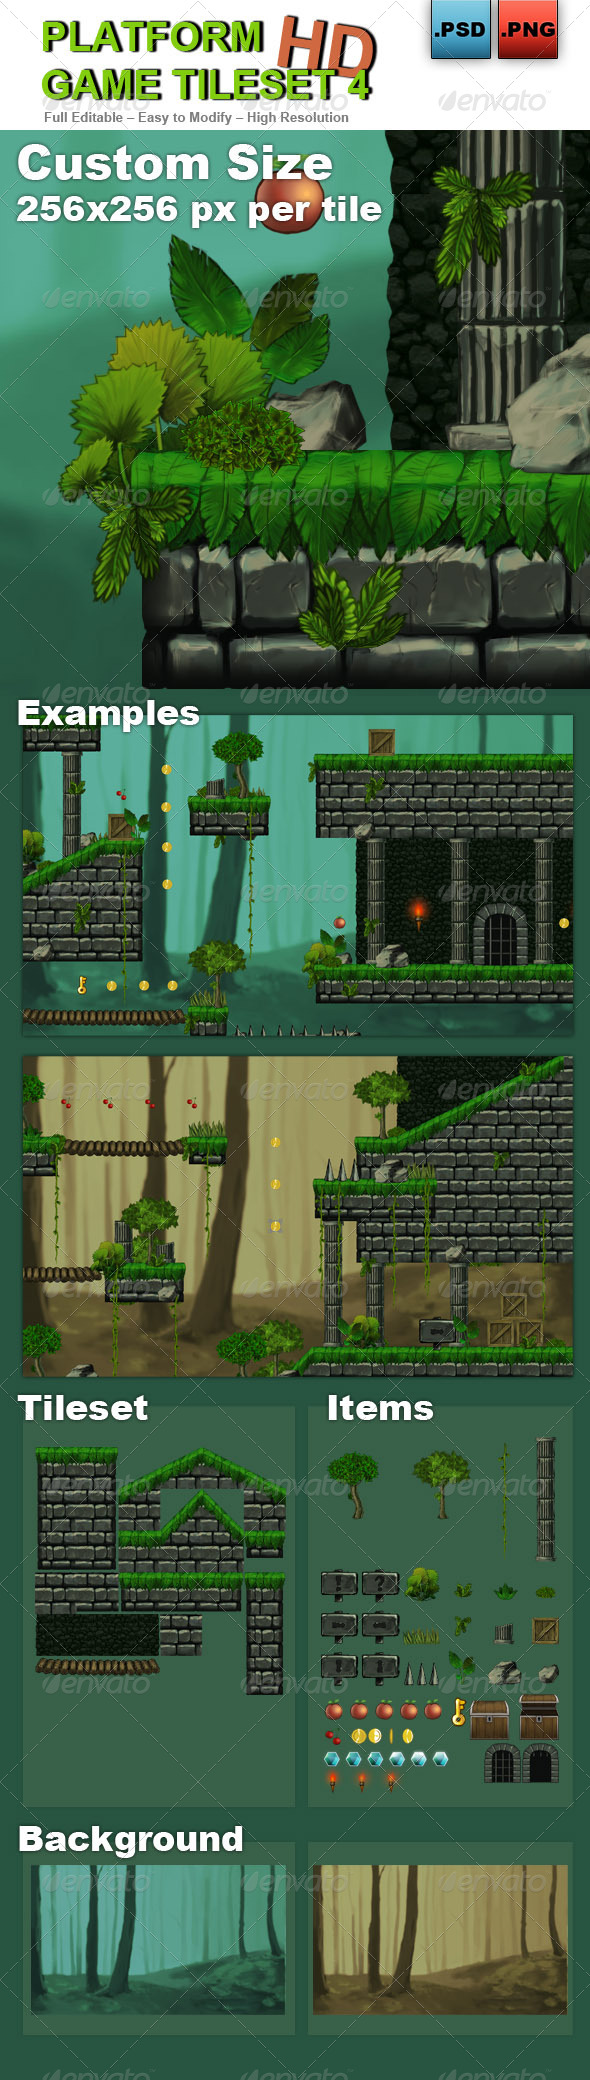 Platform Game Tileset 4: Abandoned Castle - Tilesets Game Assets